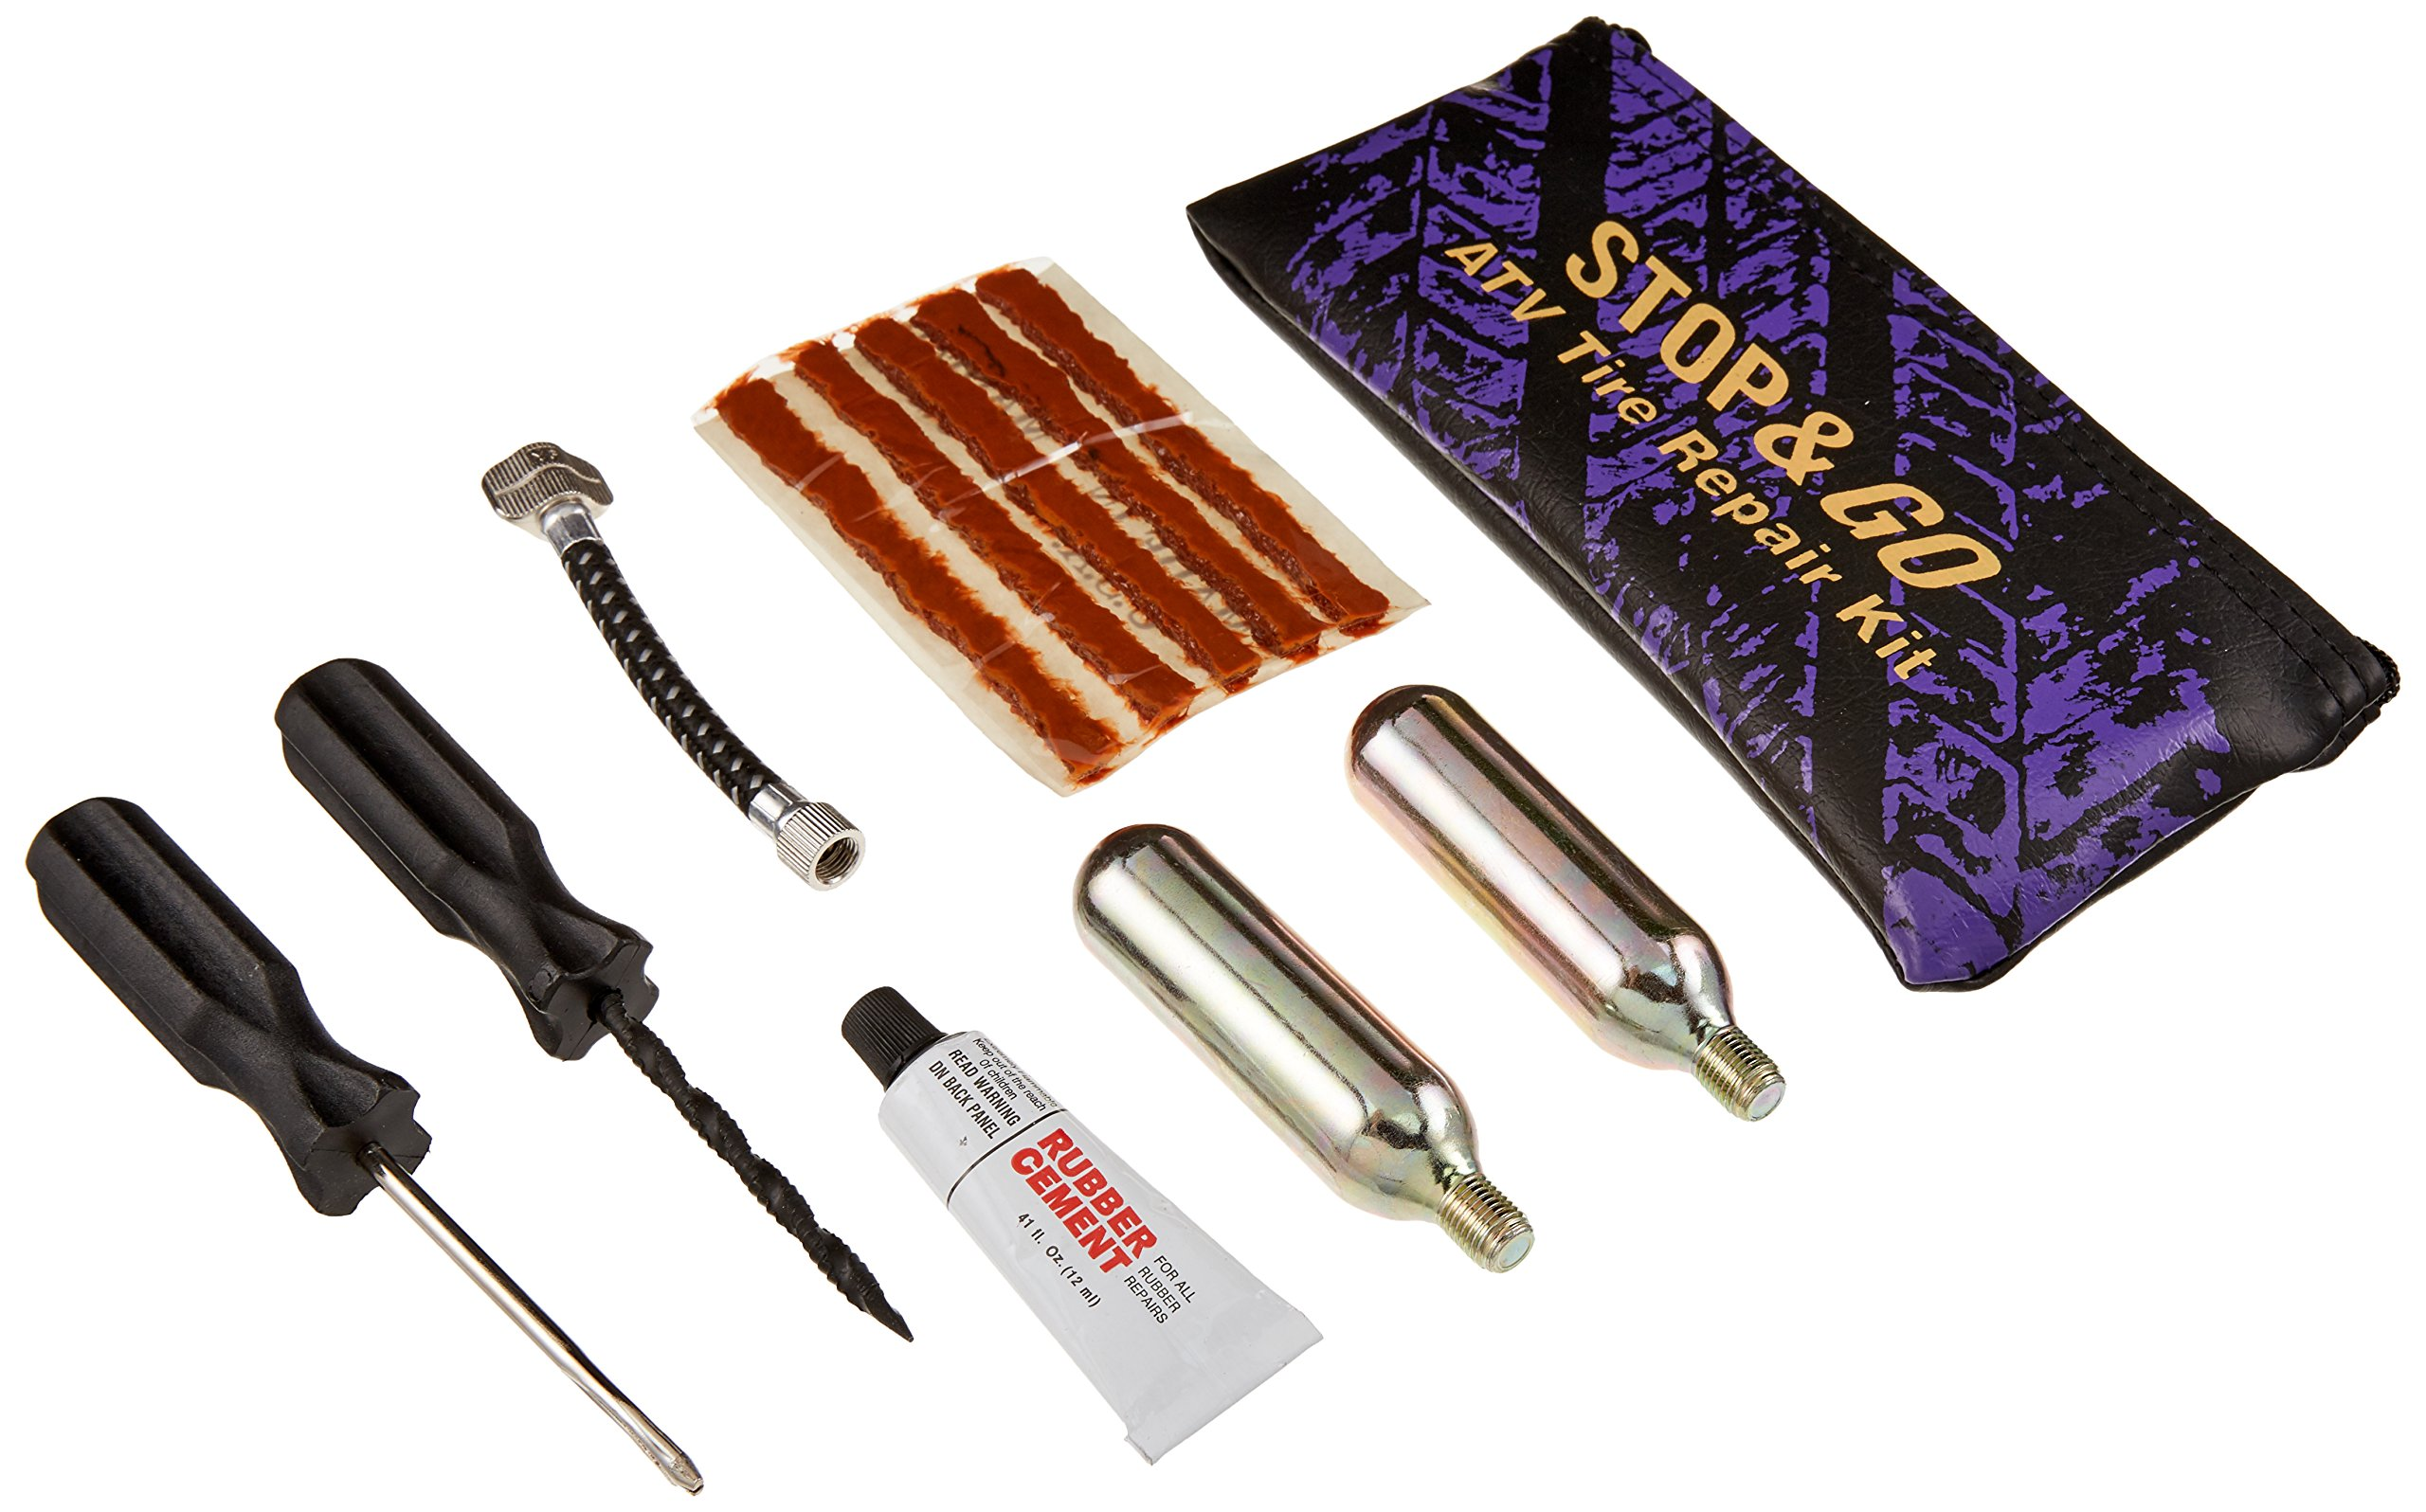 Stop & Go 8065 ATV Tire Repair Kit